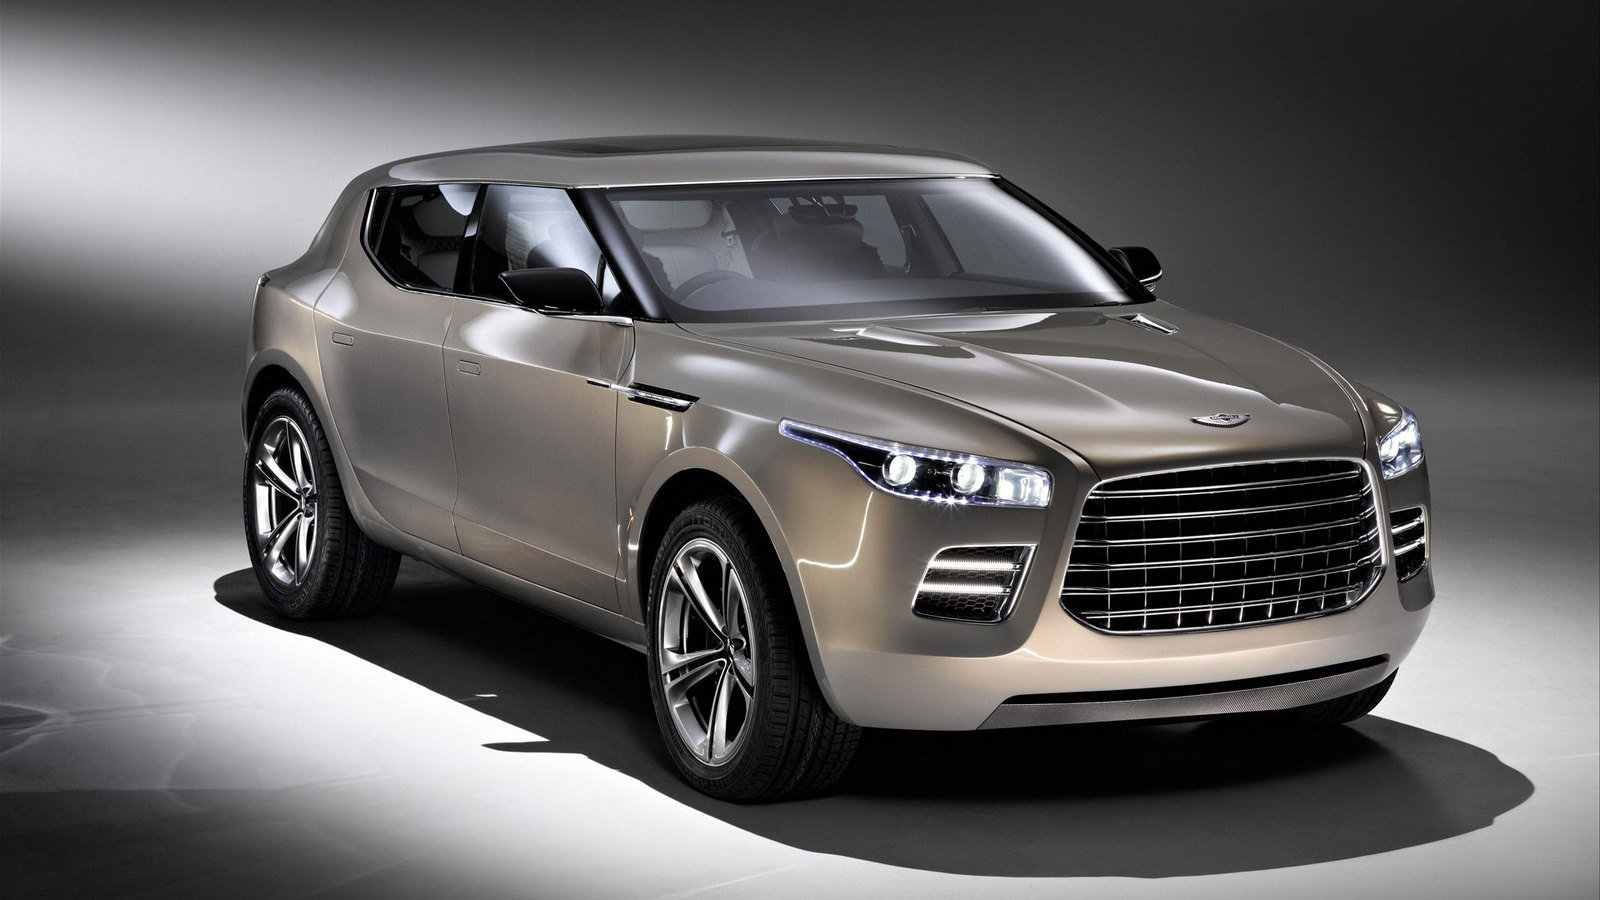 Ford Hybrid Suv >> Aston Martin Plans SUV And Hybrid Models By 2020 | Top Speed